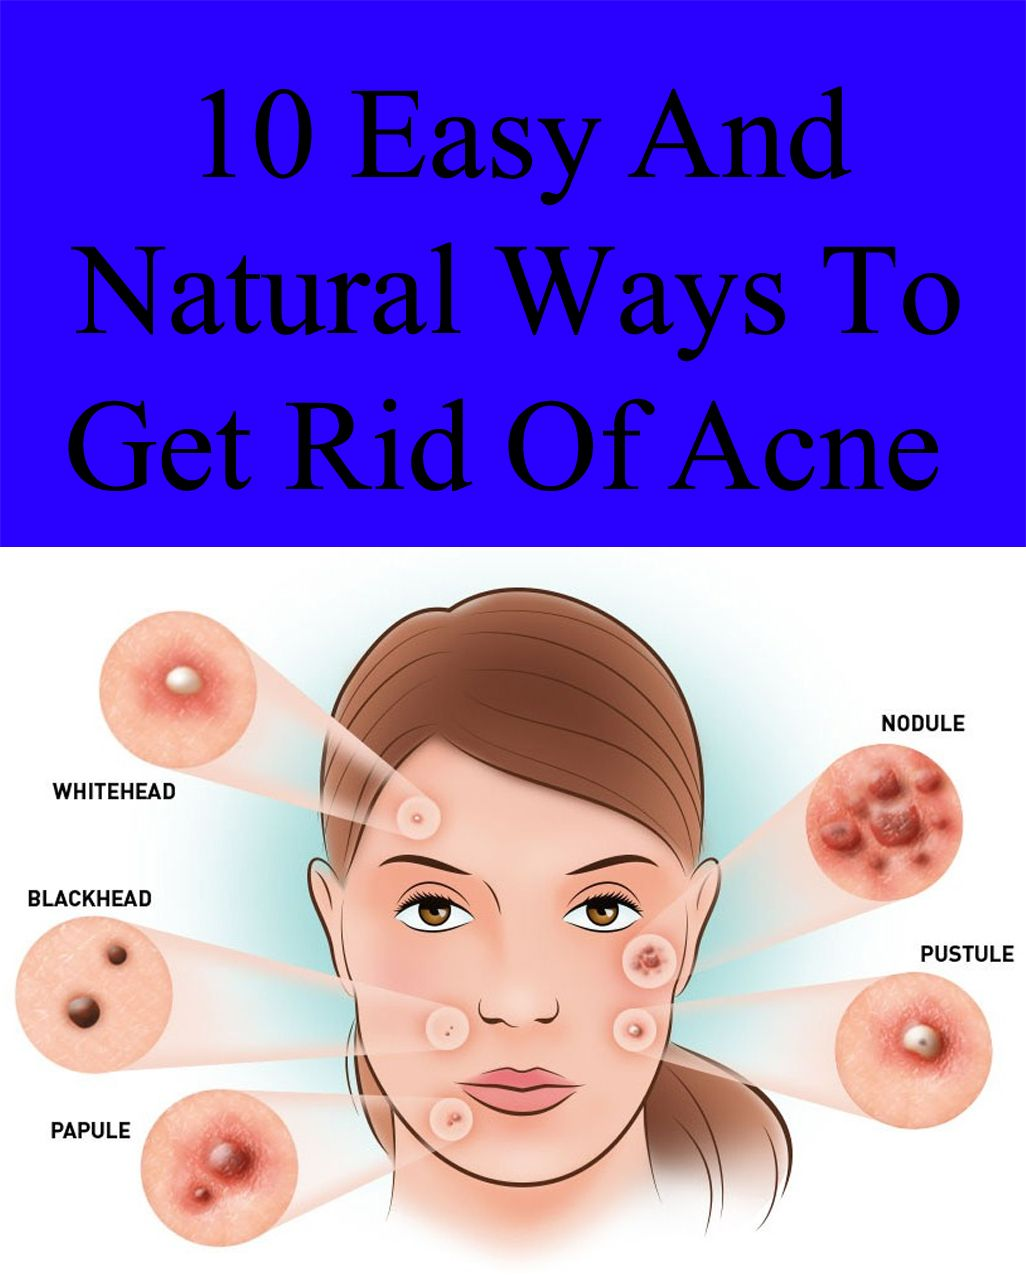 10 Easy And Natural Ways To Get Rid Of Acne How To Get Rid Of Acne Acne Scar Removal Acne